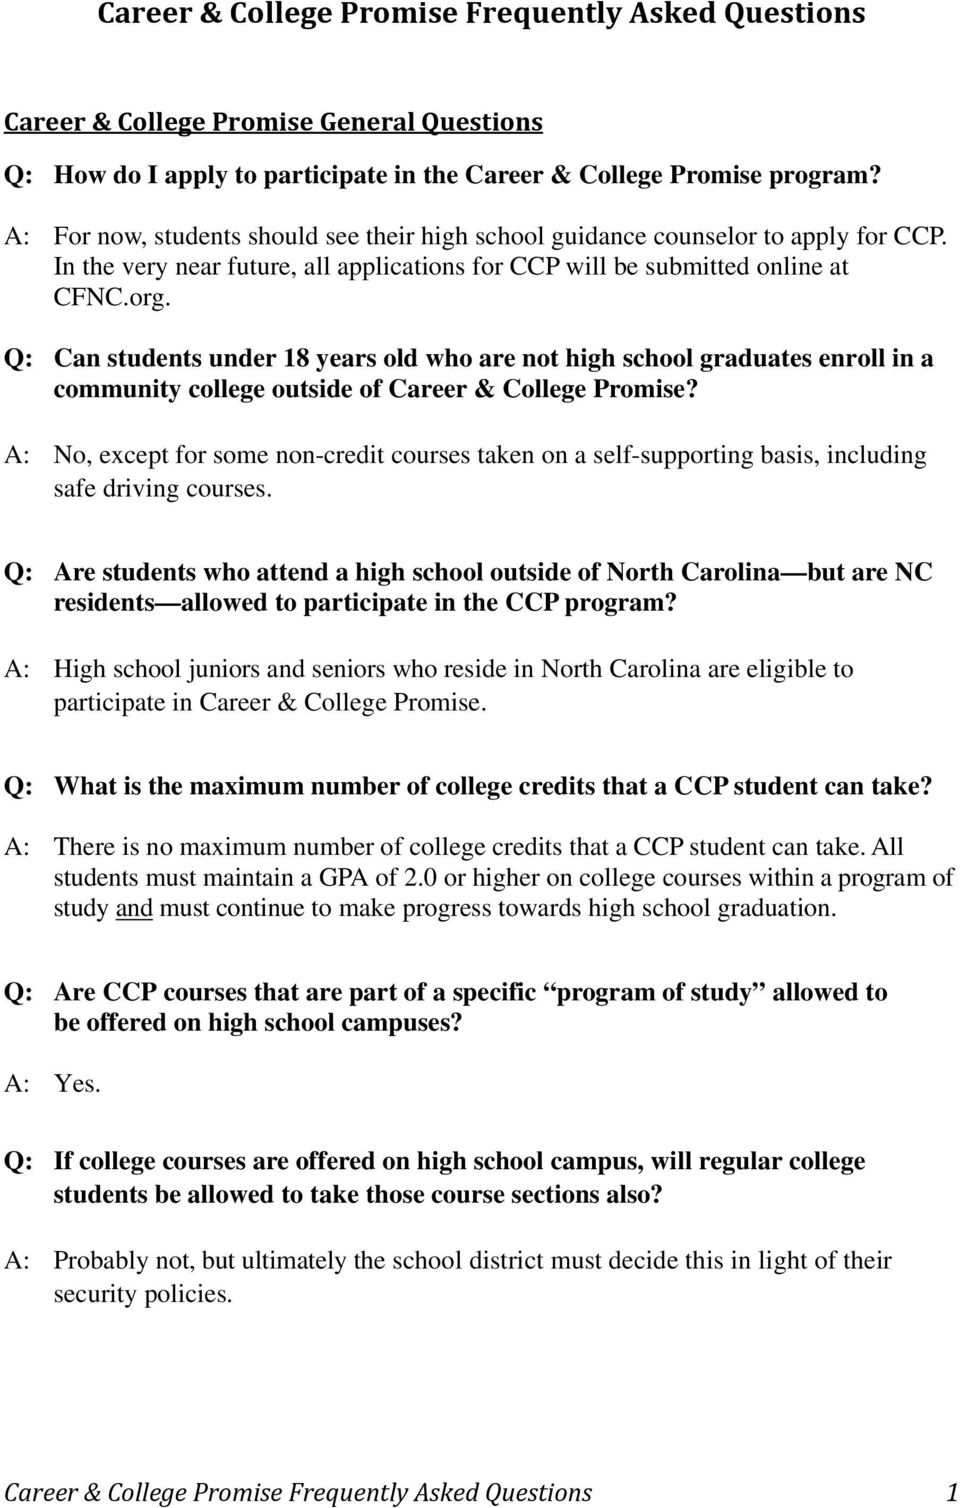 Q: Can students under 18 years old who are not high school graduates enroll in a community college outside of Career & College Promise?